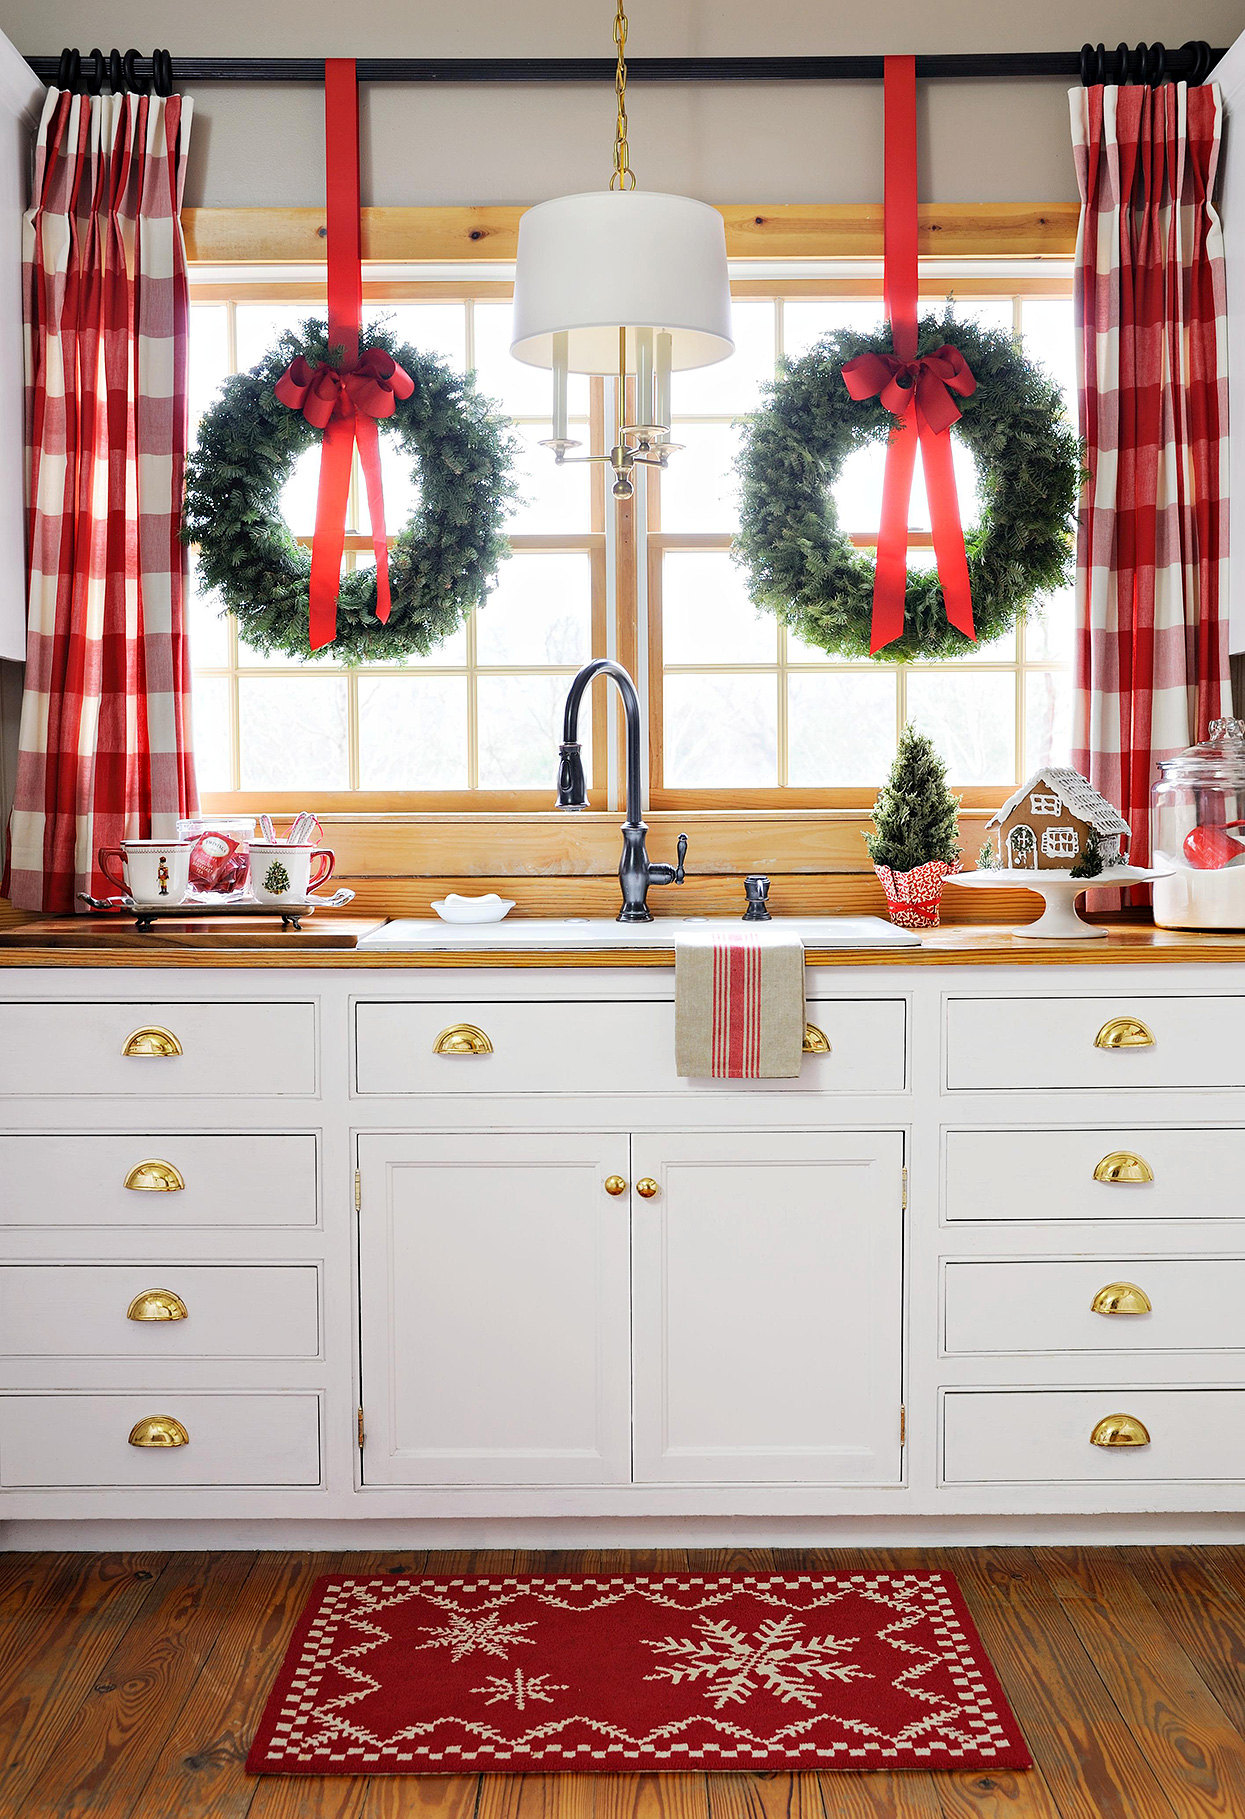 white kitchen sink with red plaid curtains and holiday wreaths in windows